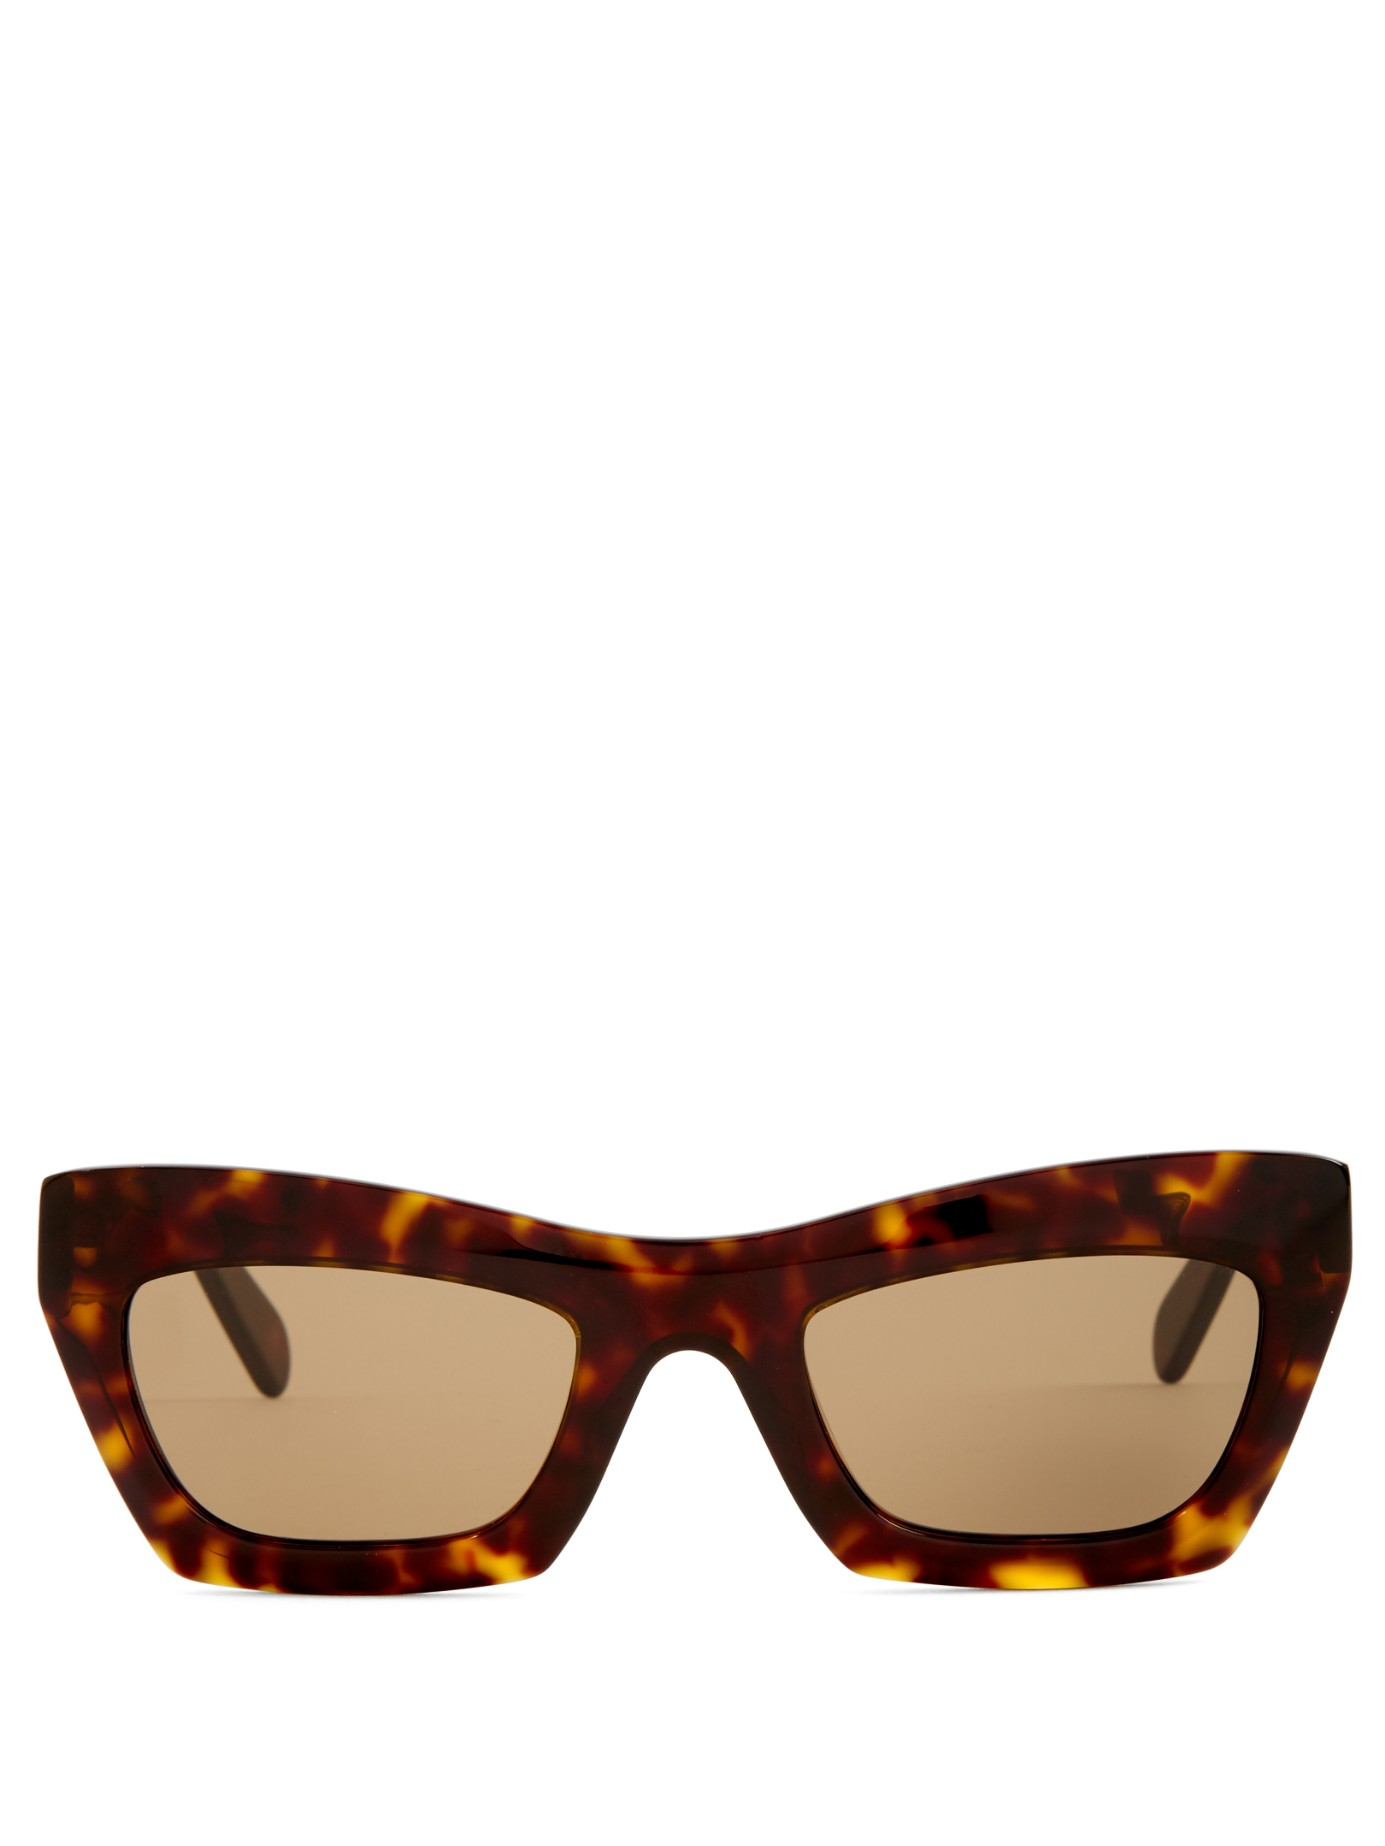 Celine Gold Frame Sunglasses : Celine Eva Rectangle-frame Sunglasses in Brown Lyst